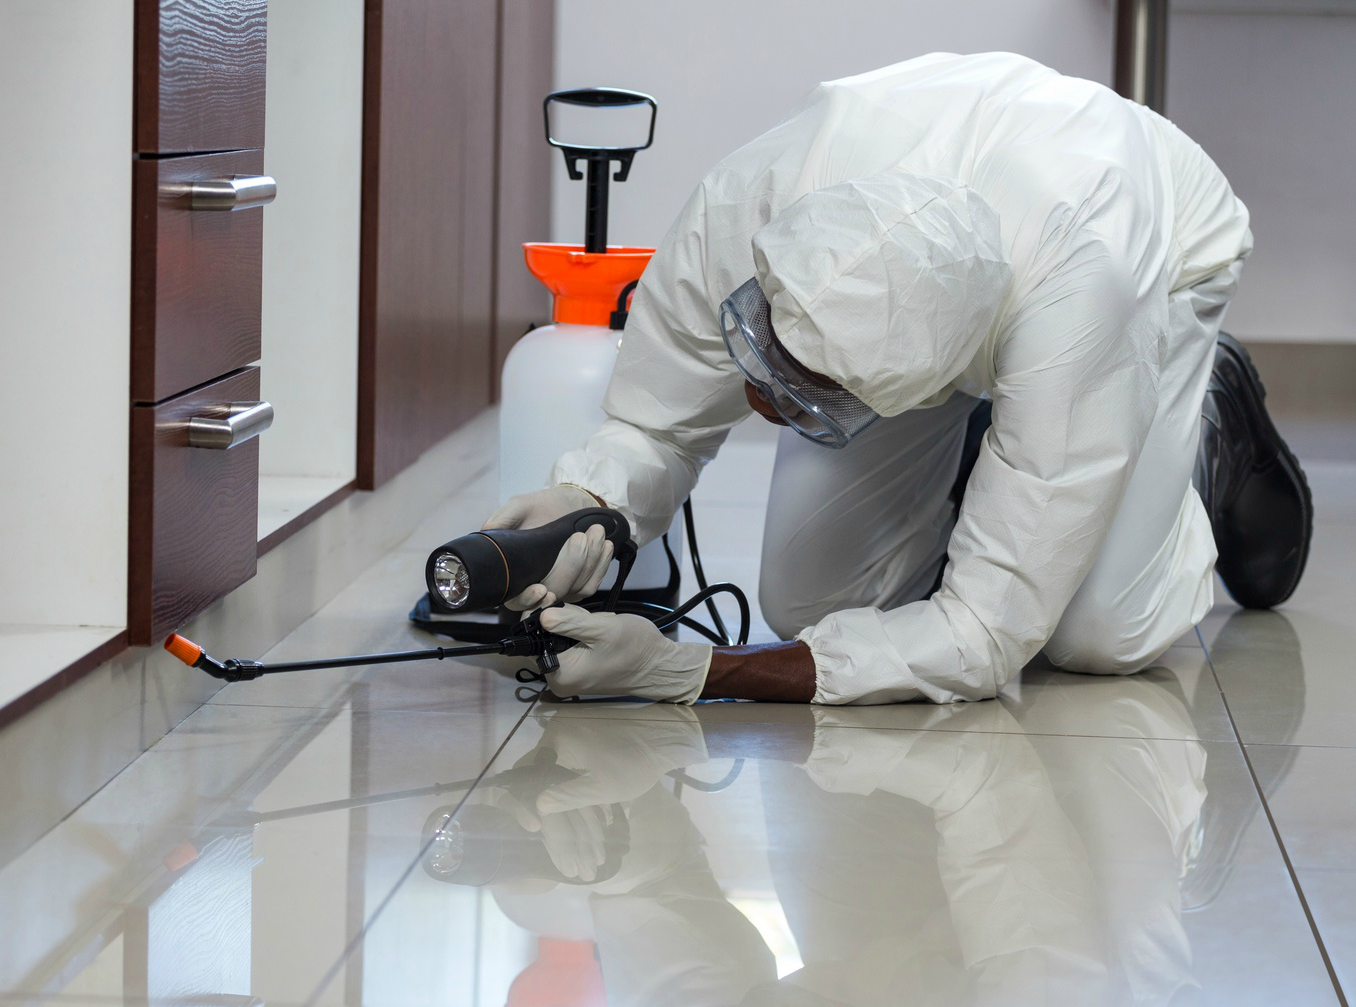 pest control worker spraying for bugs